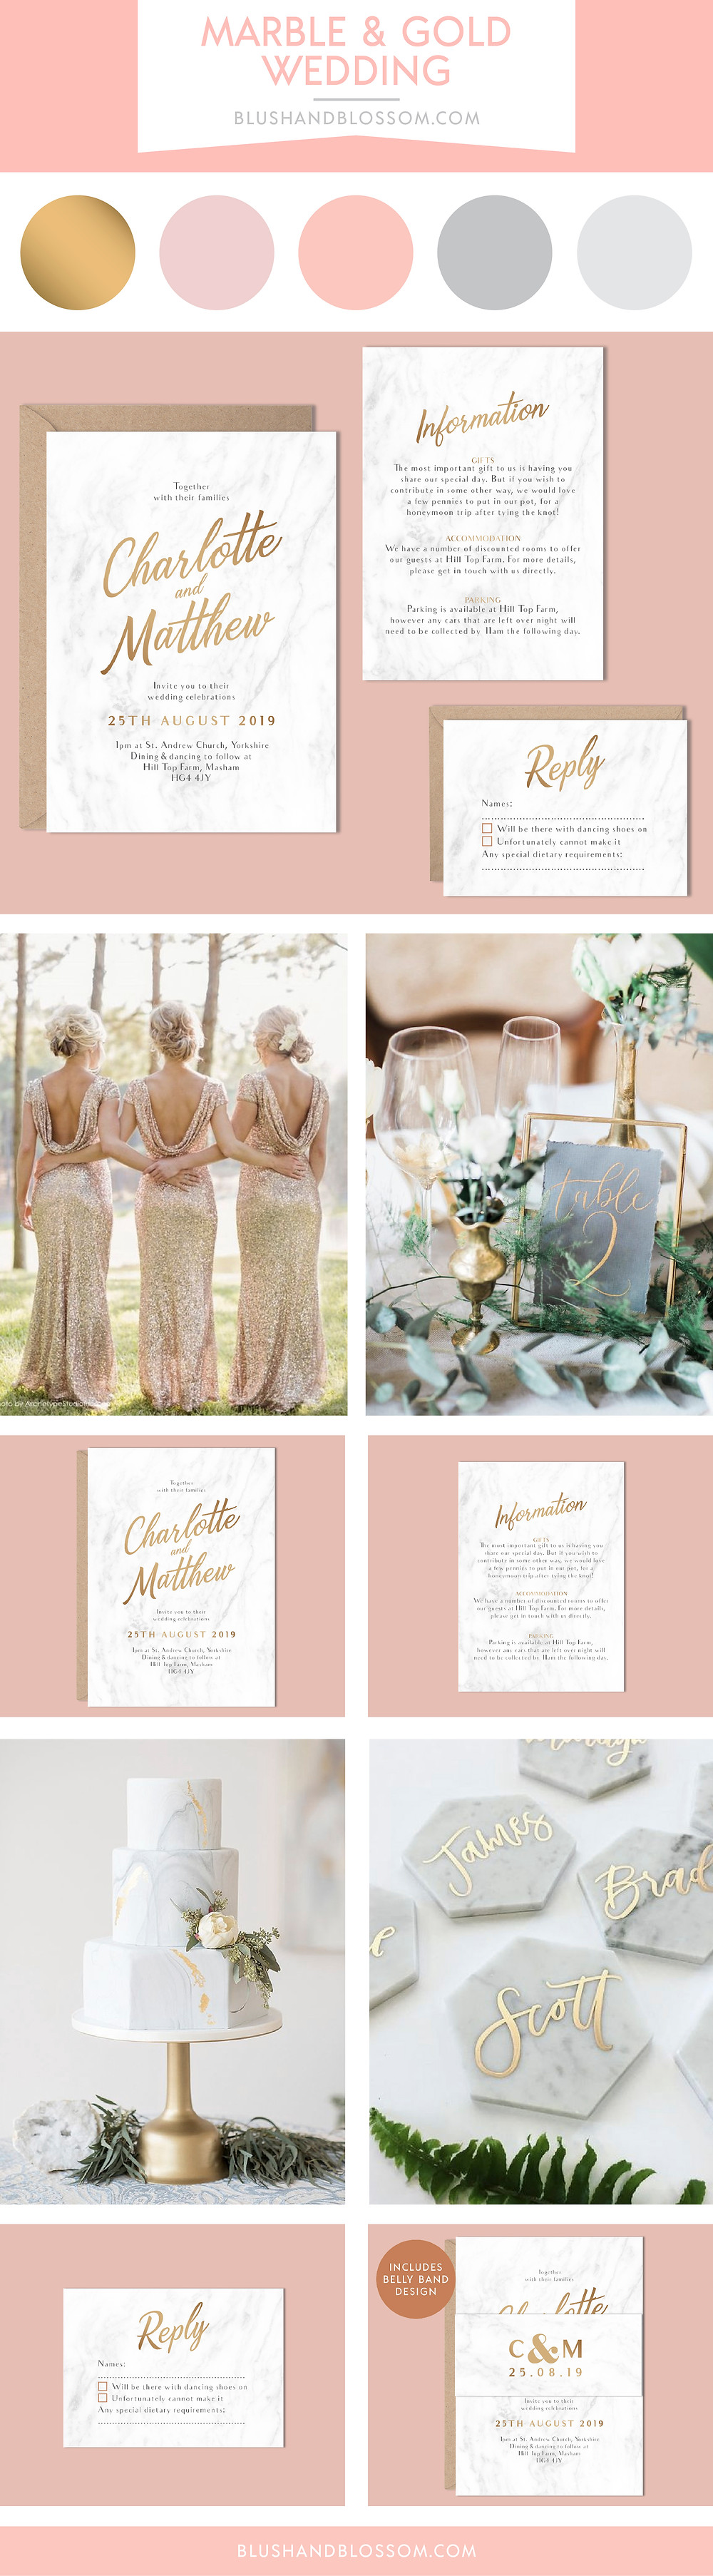 Marble wedding invitation and inspiration